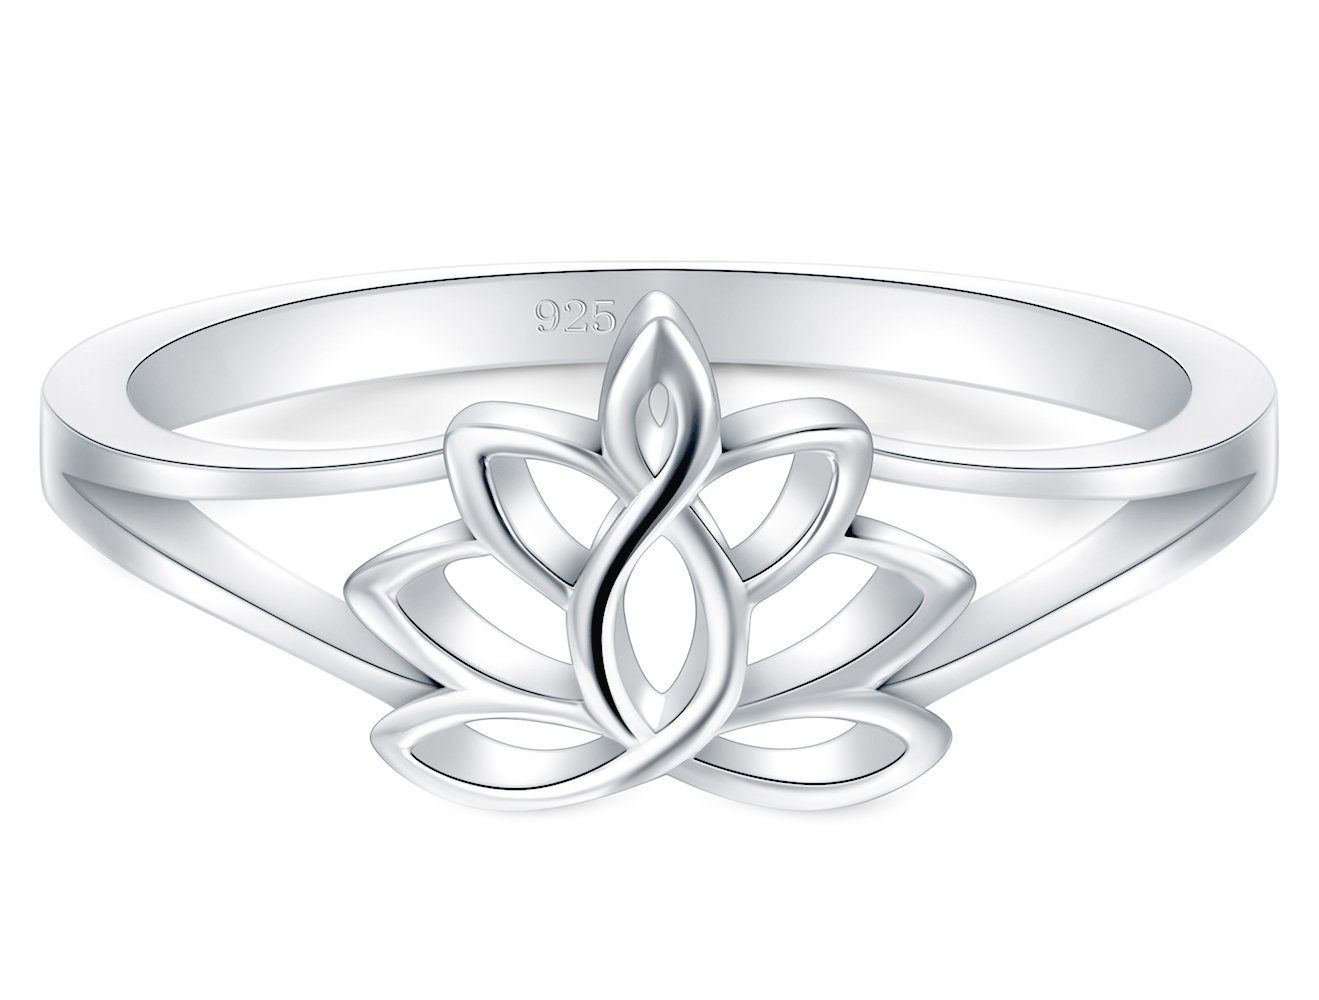 BORUO 925 Sterling Silver Ring Lotus Flower Yoga High Polish Tarnish Resistant Comfort Fit Wedding Band 2mm Ring